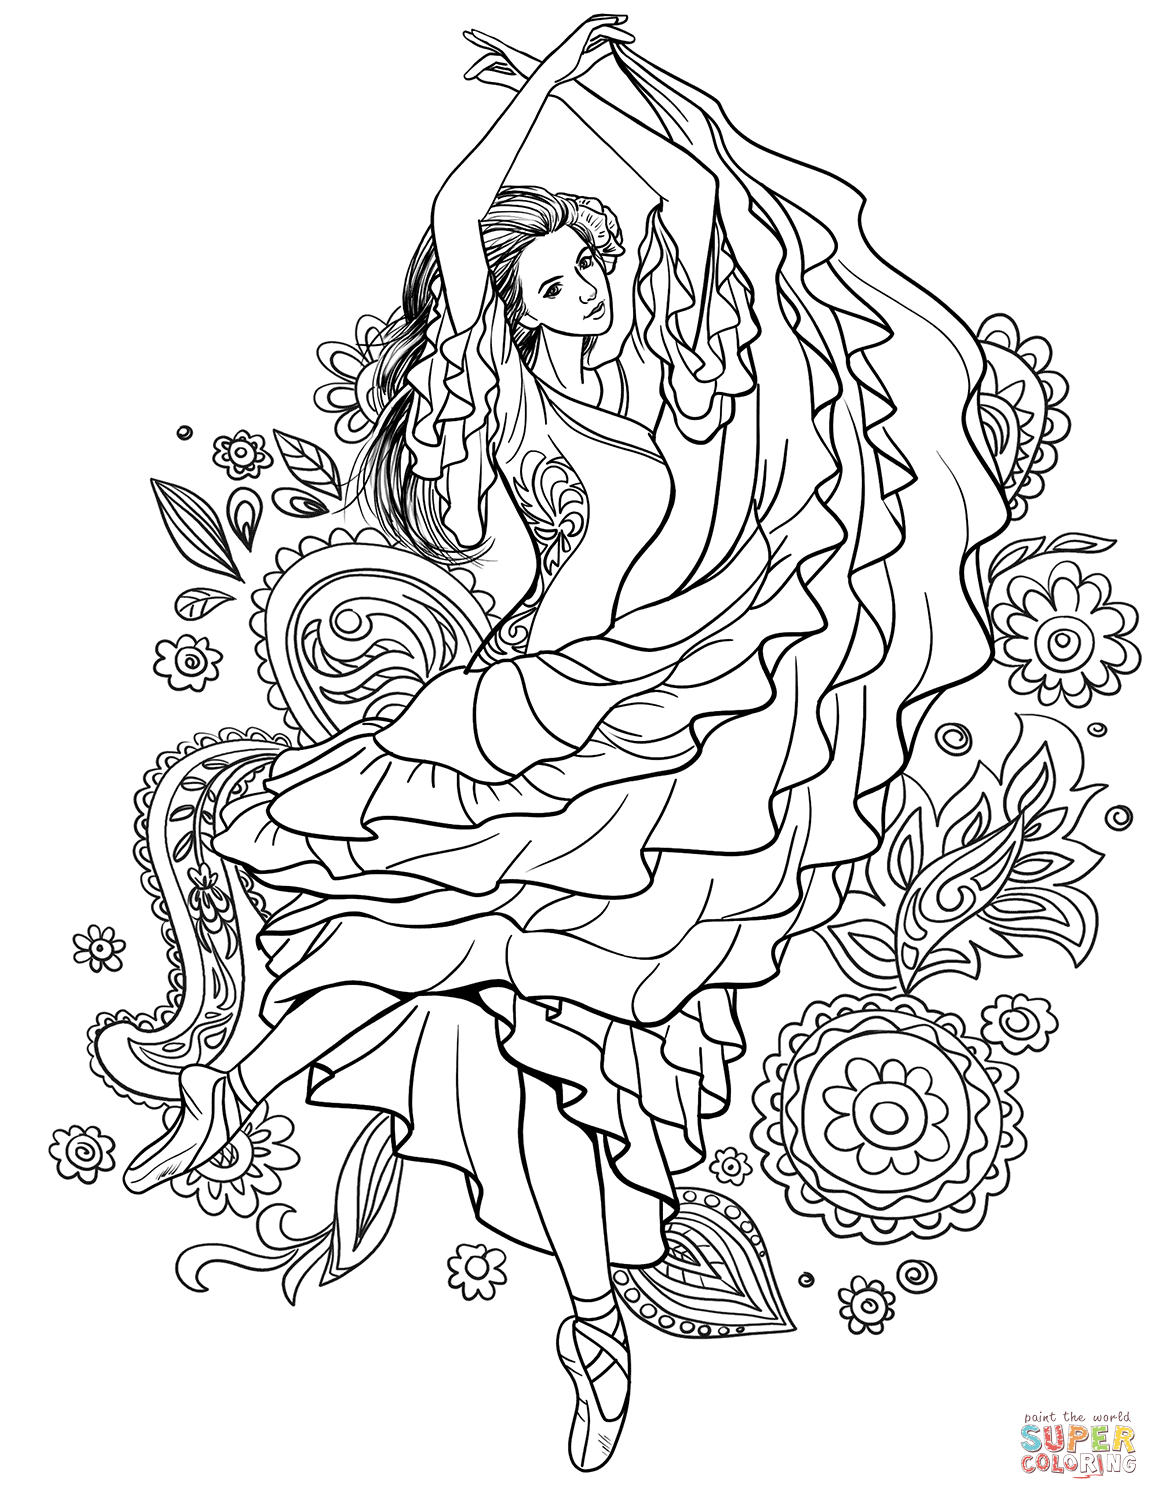 Gypsy Woman Dancing Carmen Coloring Page